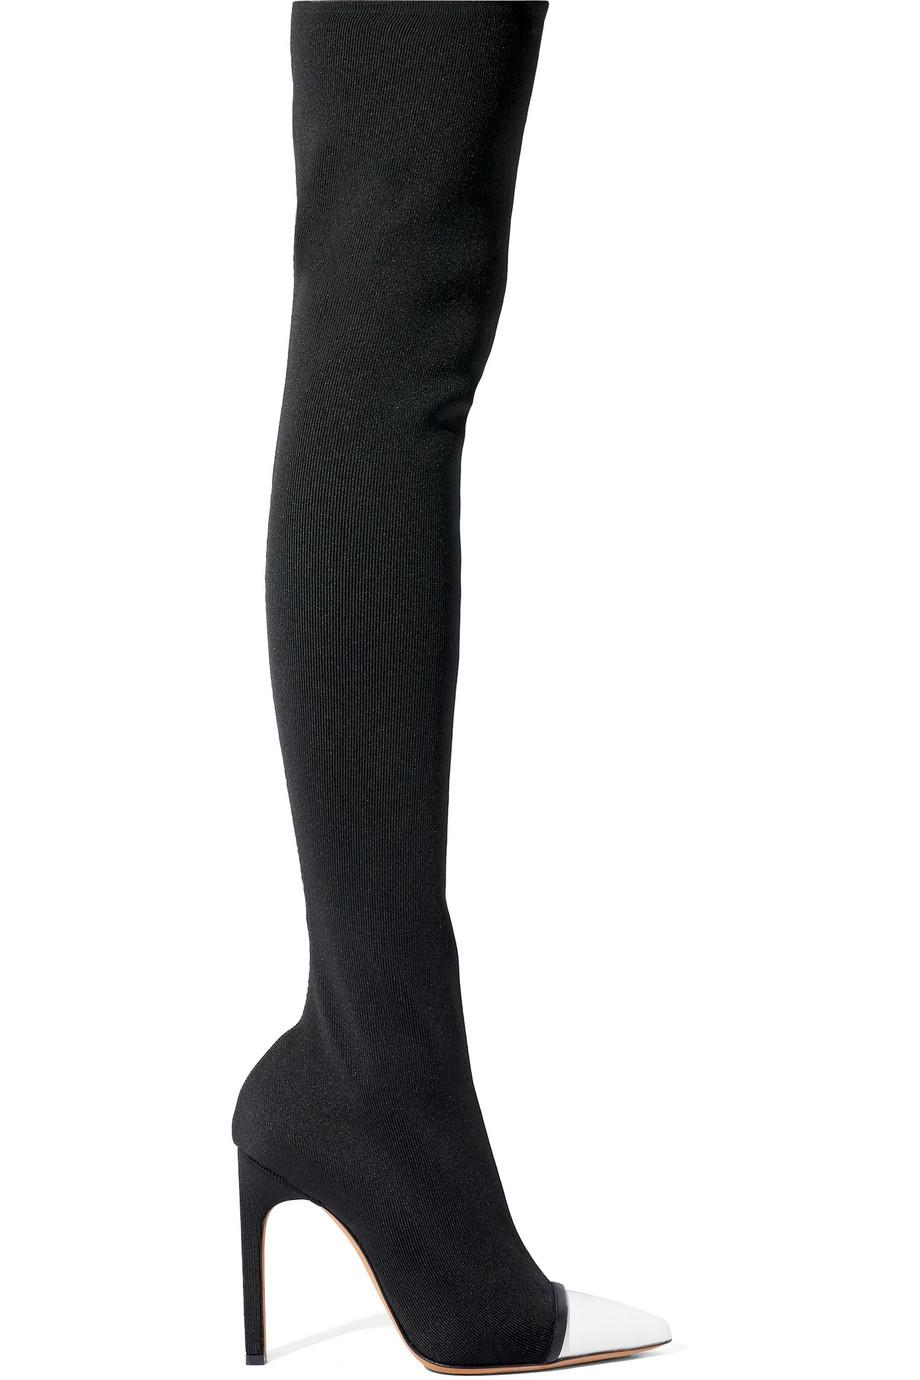 Givenchy Over-the-knee stretch-knit boots UyVmt